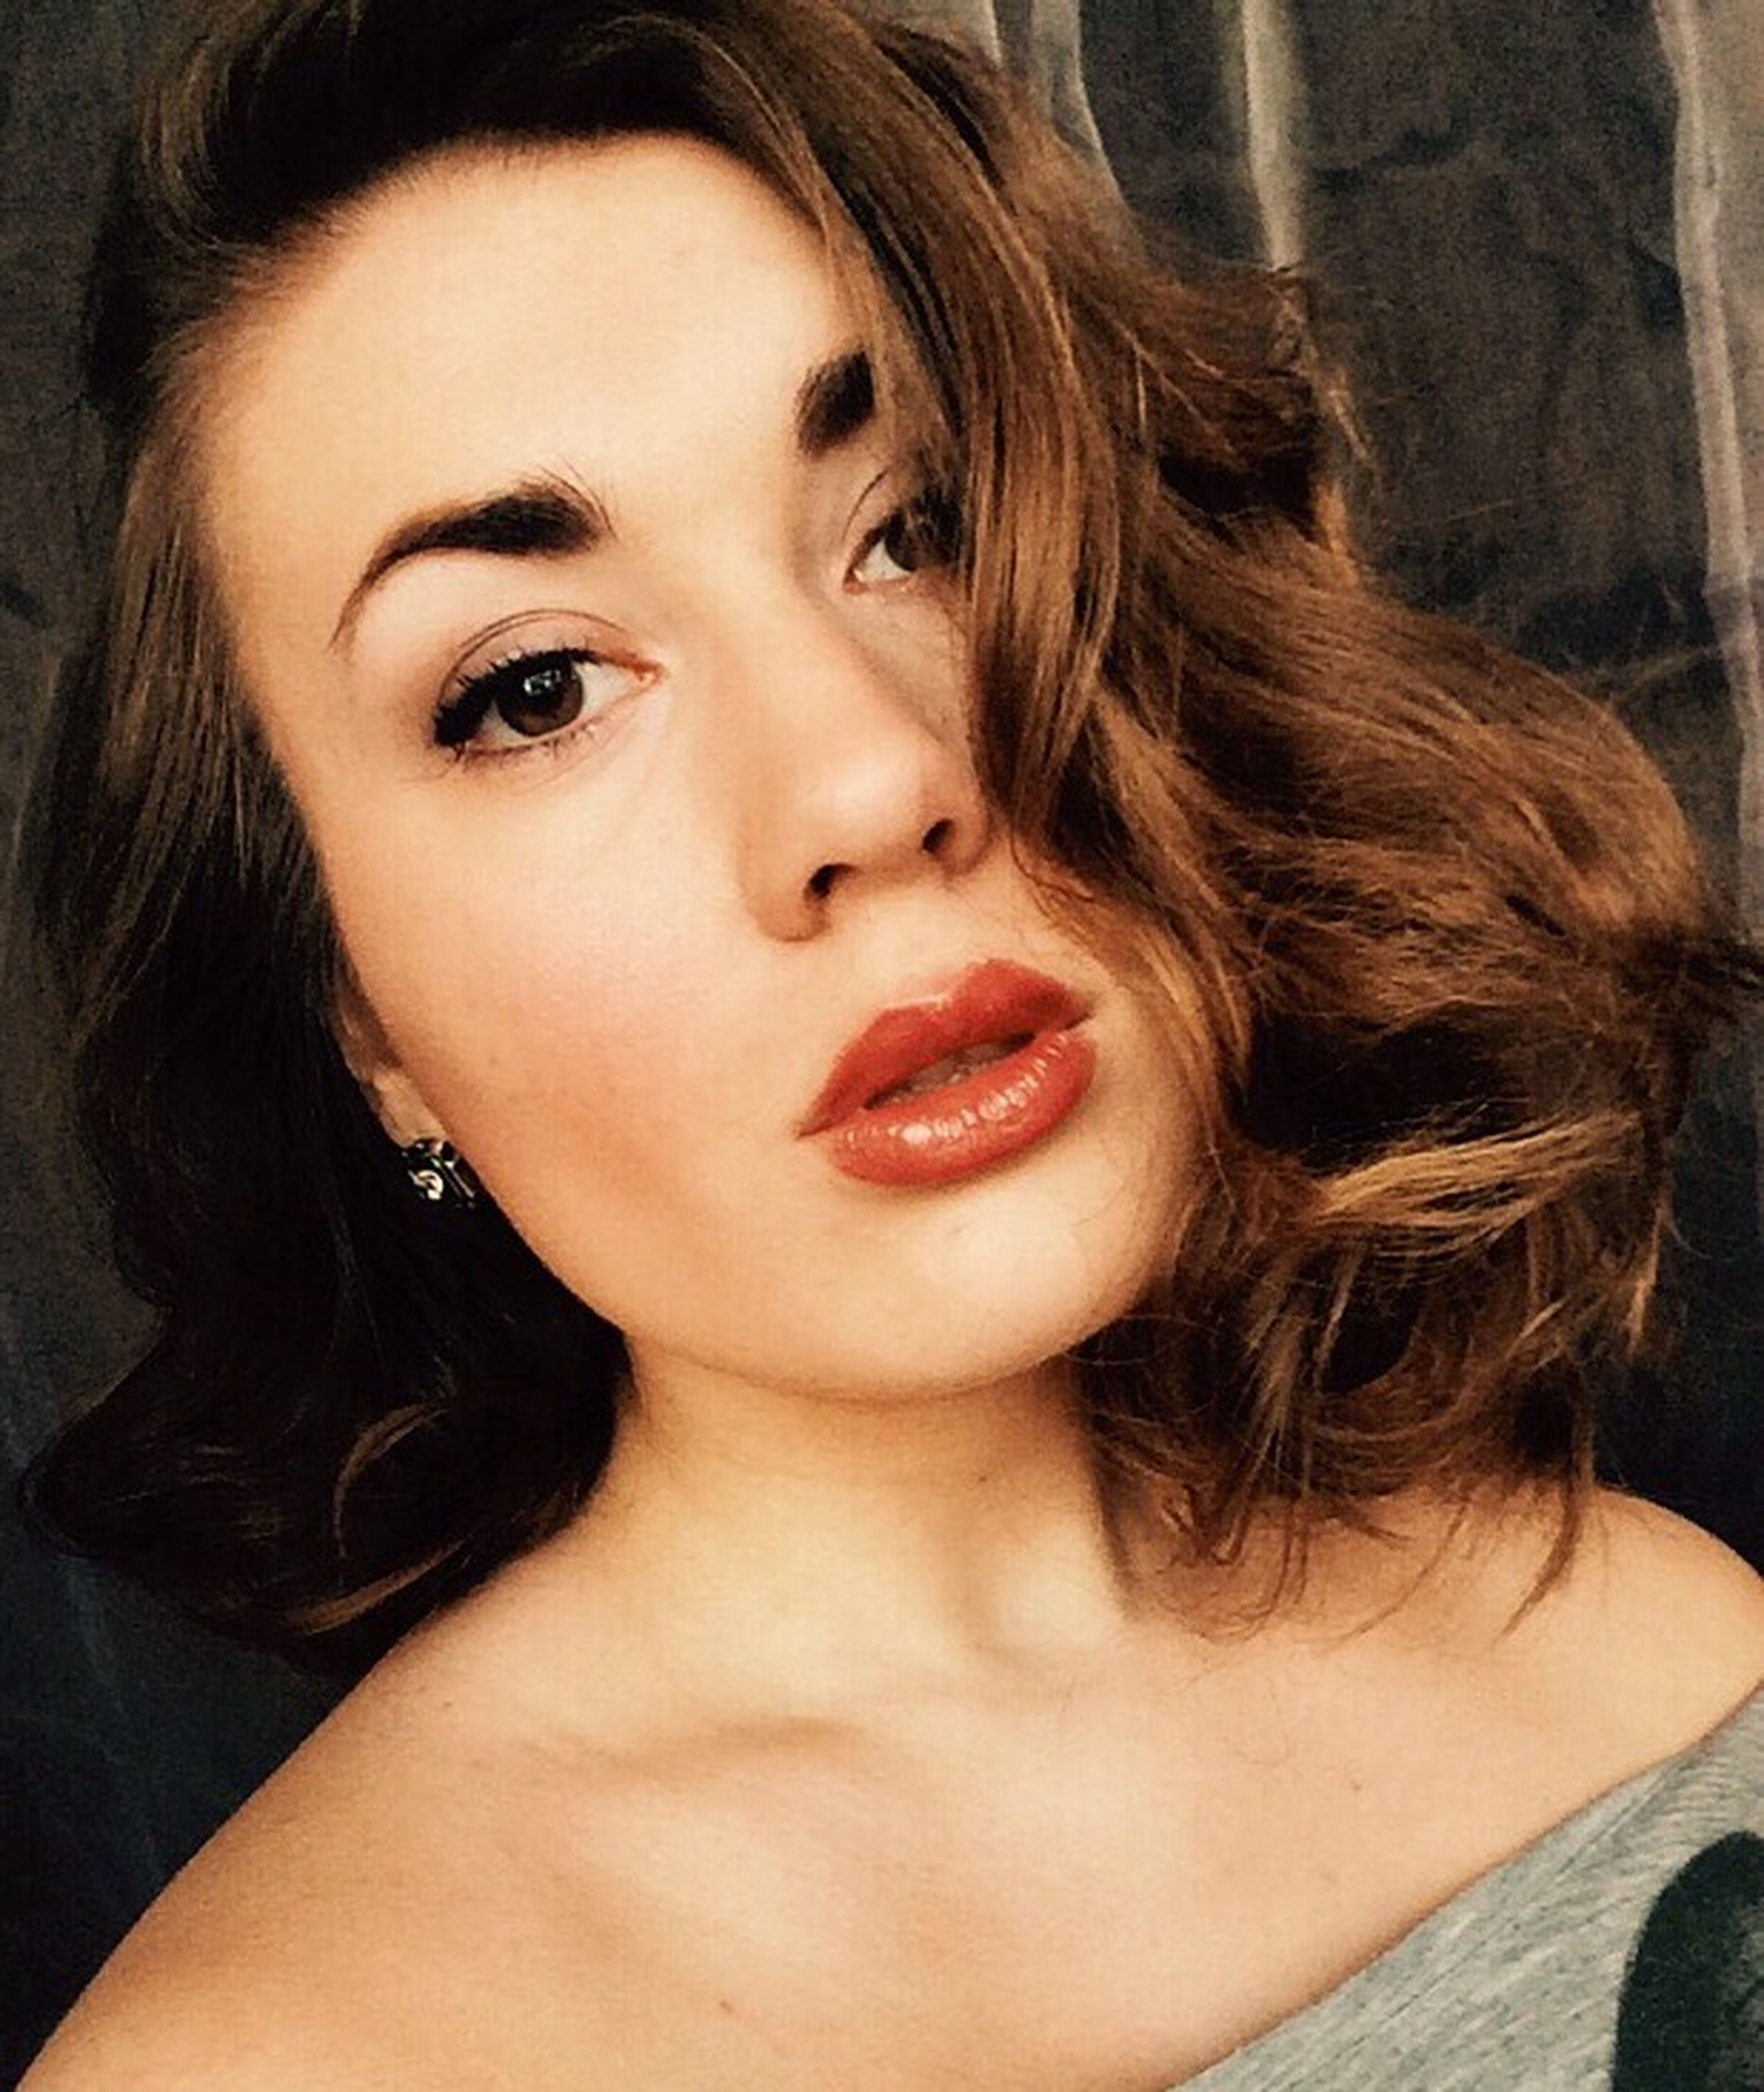 young women, person, headshot, long hair, young adult, looking at camera, portrait, lifestyles, indoors, front view, leisure activity, close-up, smiling, brown hair, lipstick, black hair, head and shoulders